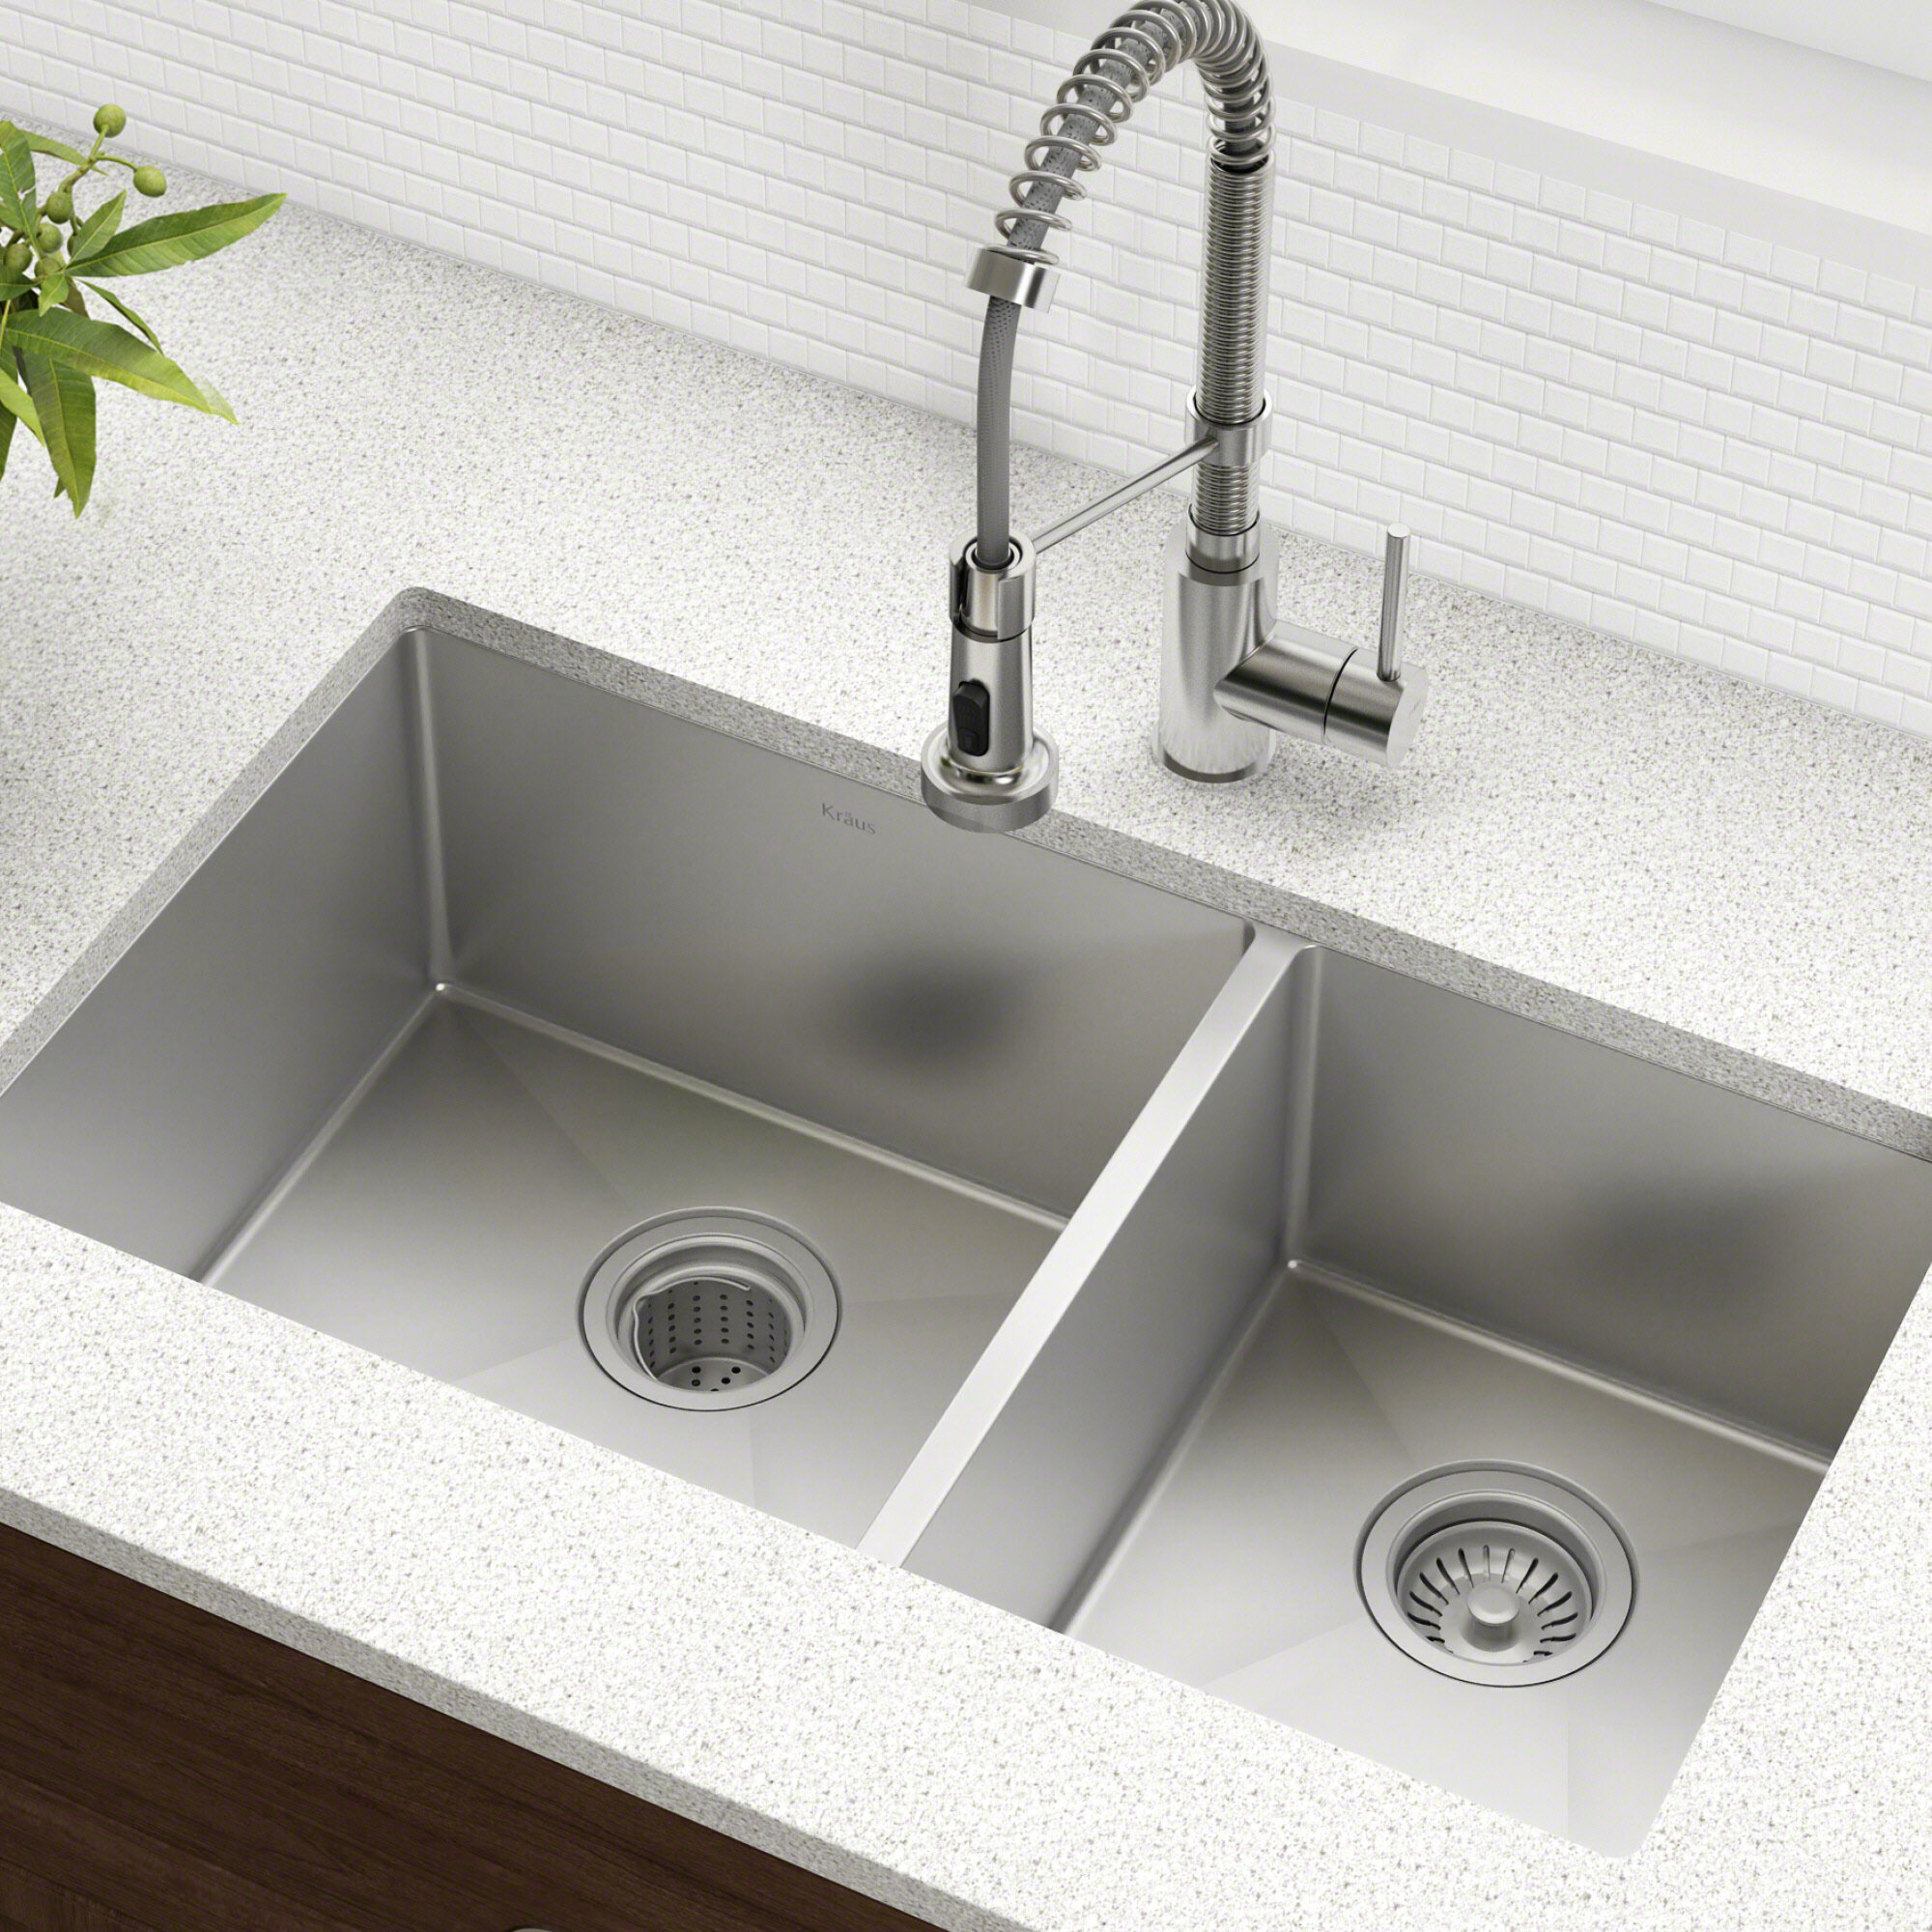 Kraus 33 l x 19 w double basin undermount kitchen sink with drain assembly reviews wayfair